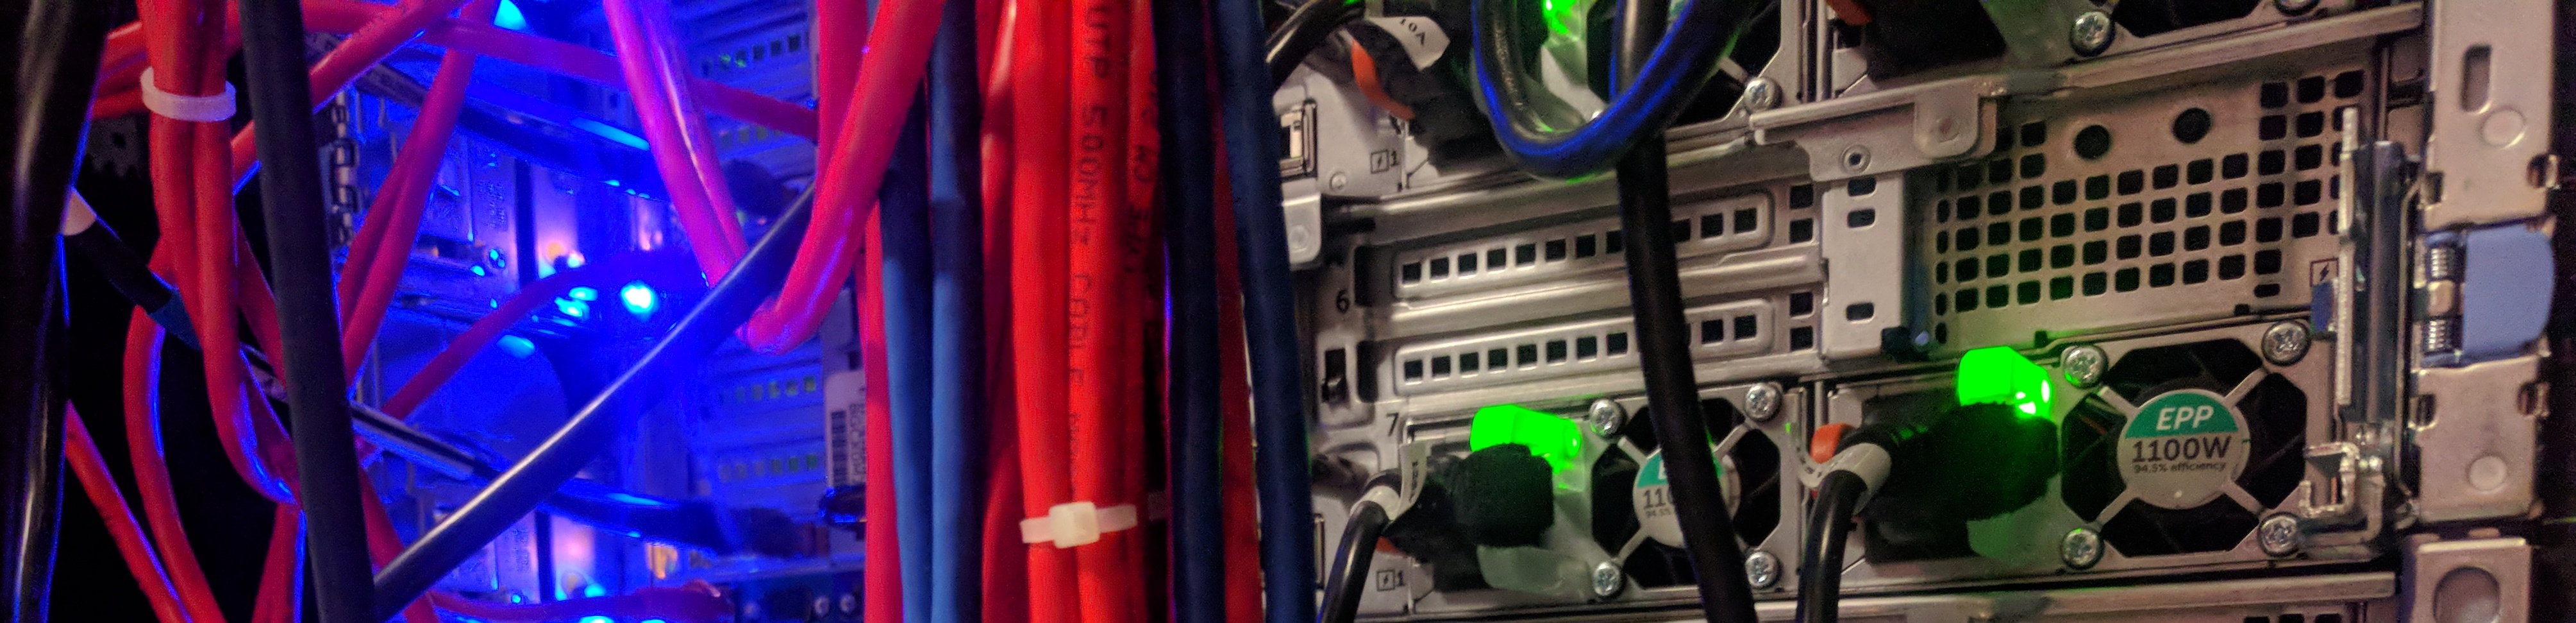 Server and cables